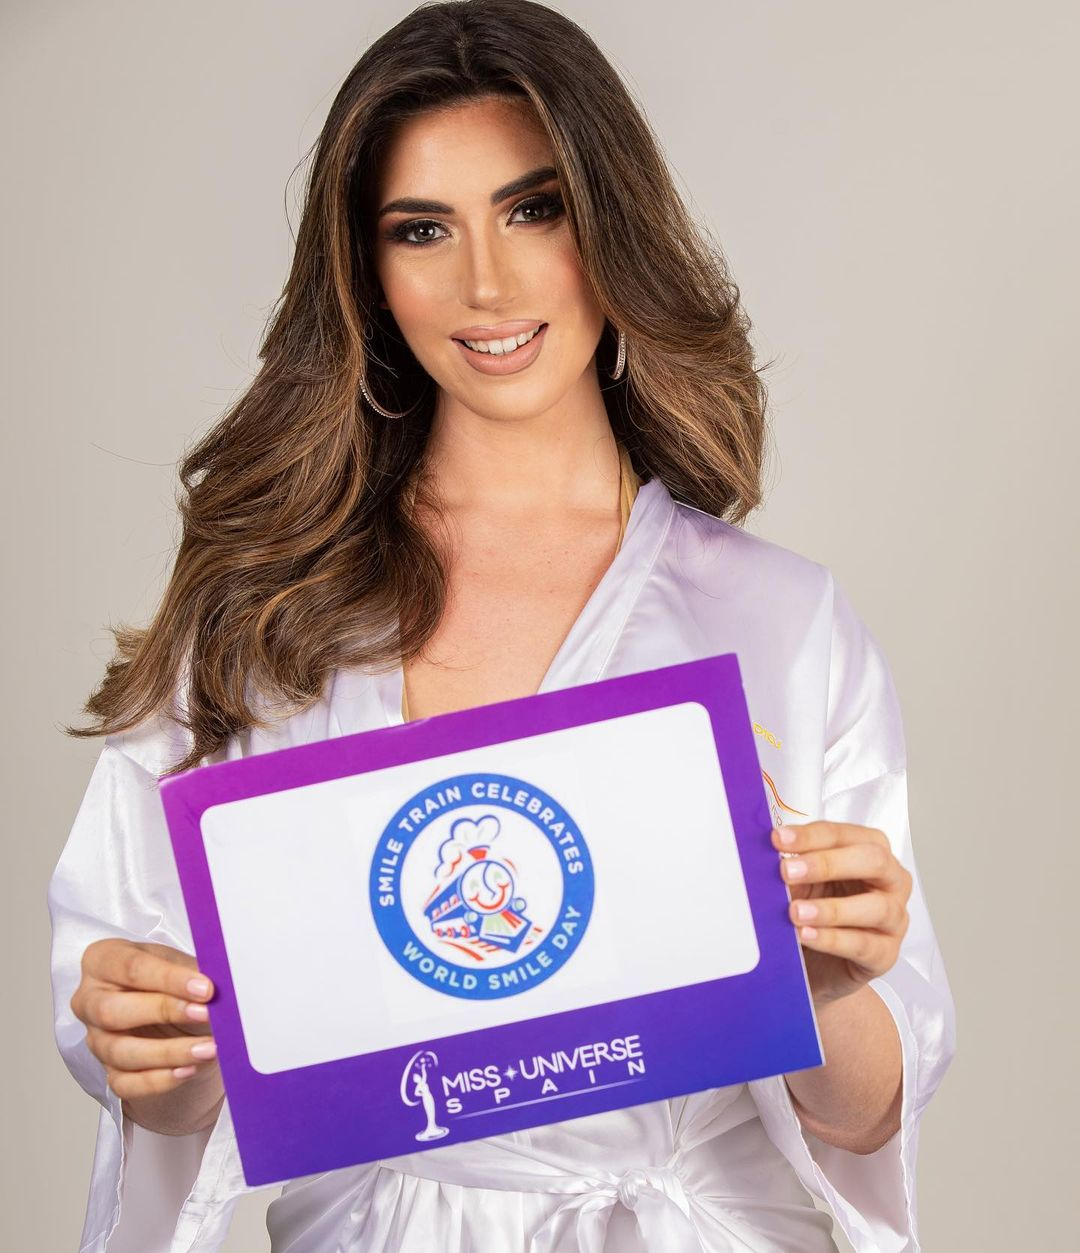 candidatas a miss universe spain 2020. final: 21 nov. - Página 4 Klwmbz3h